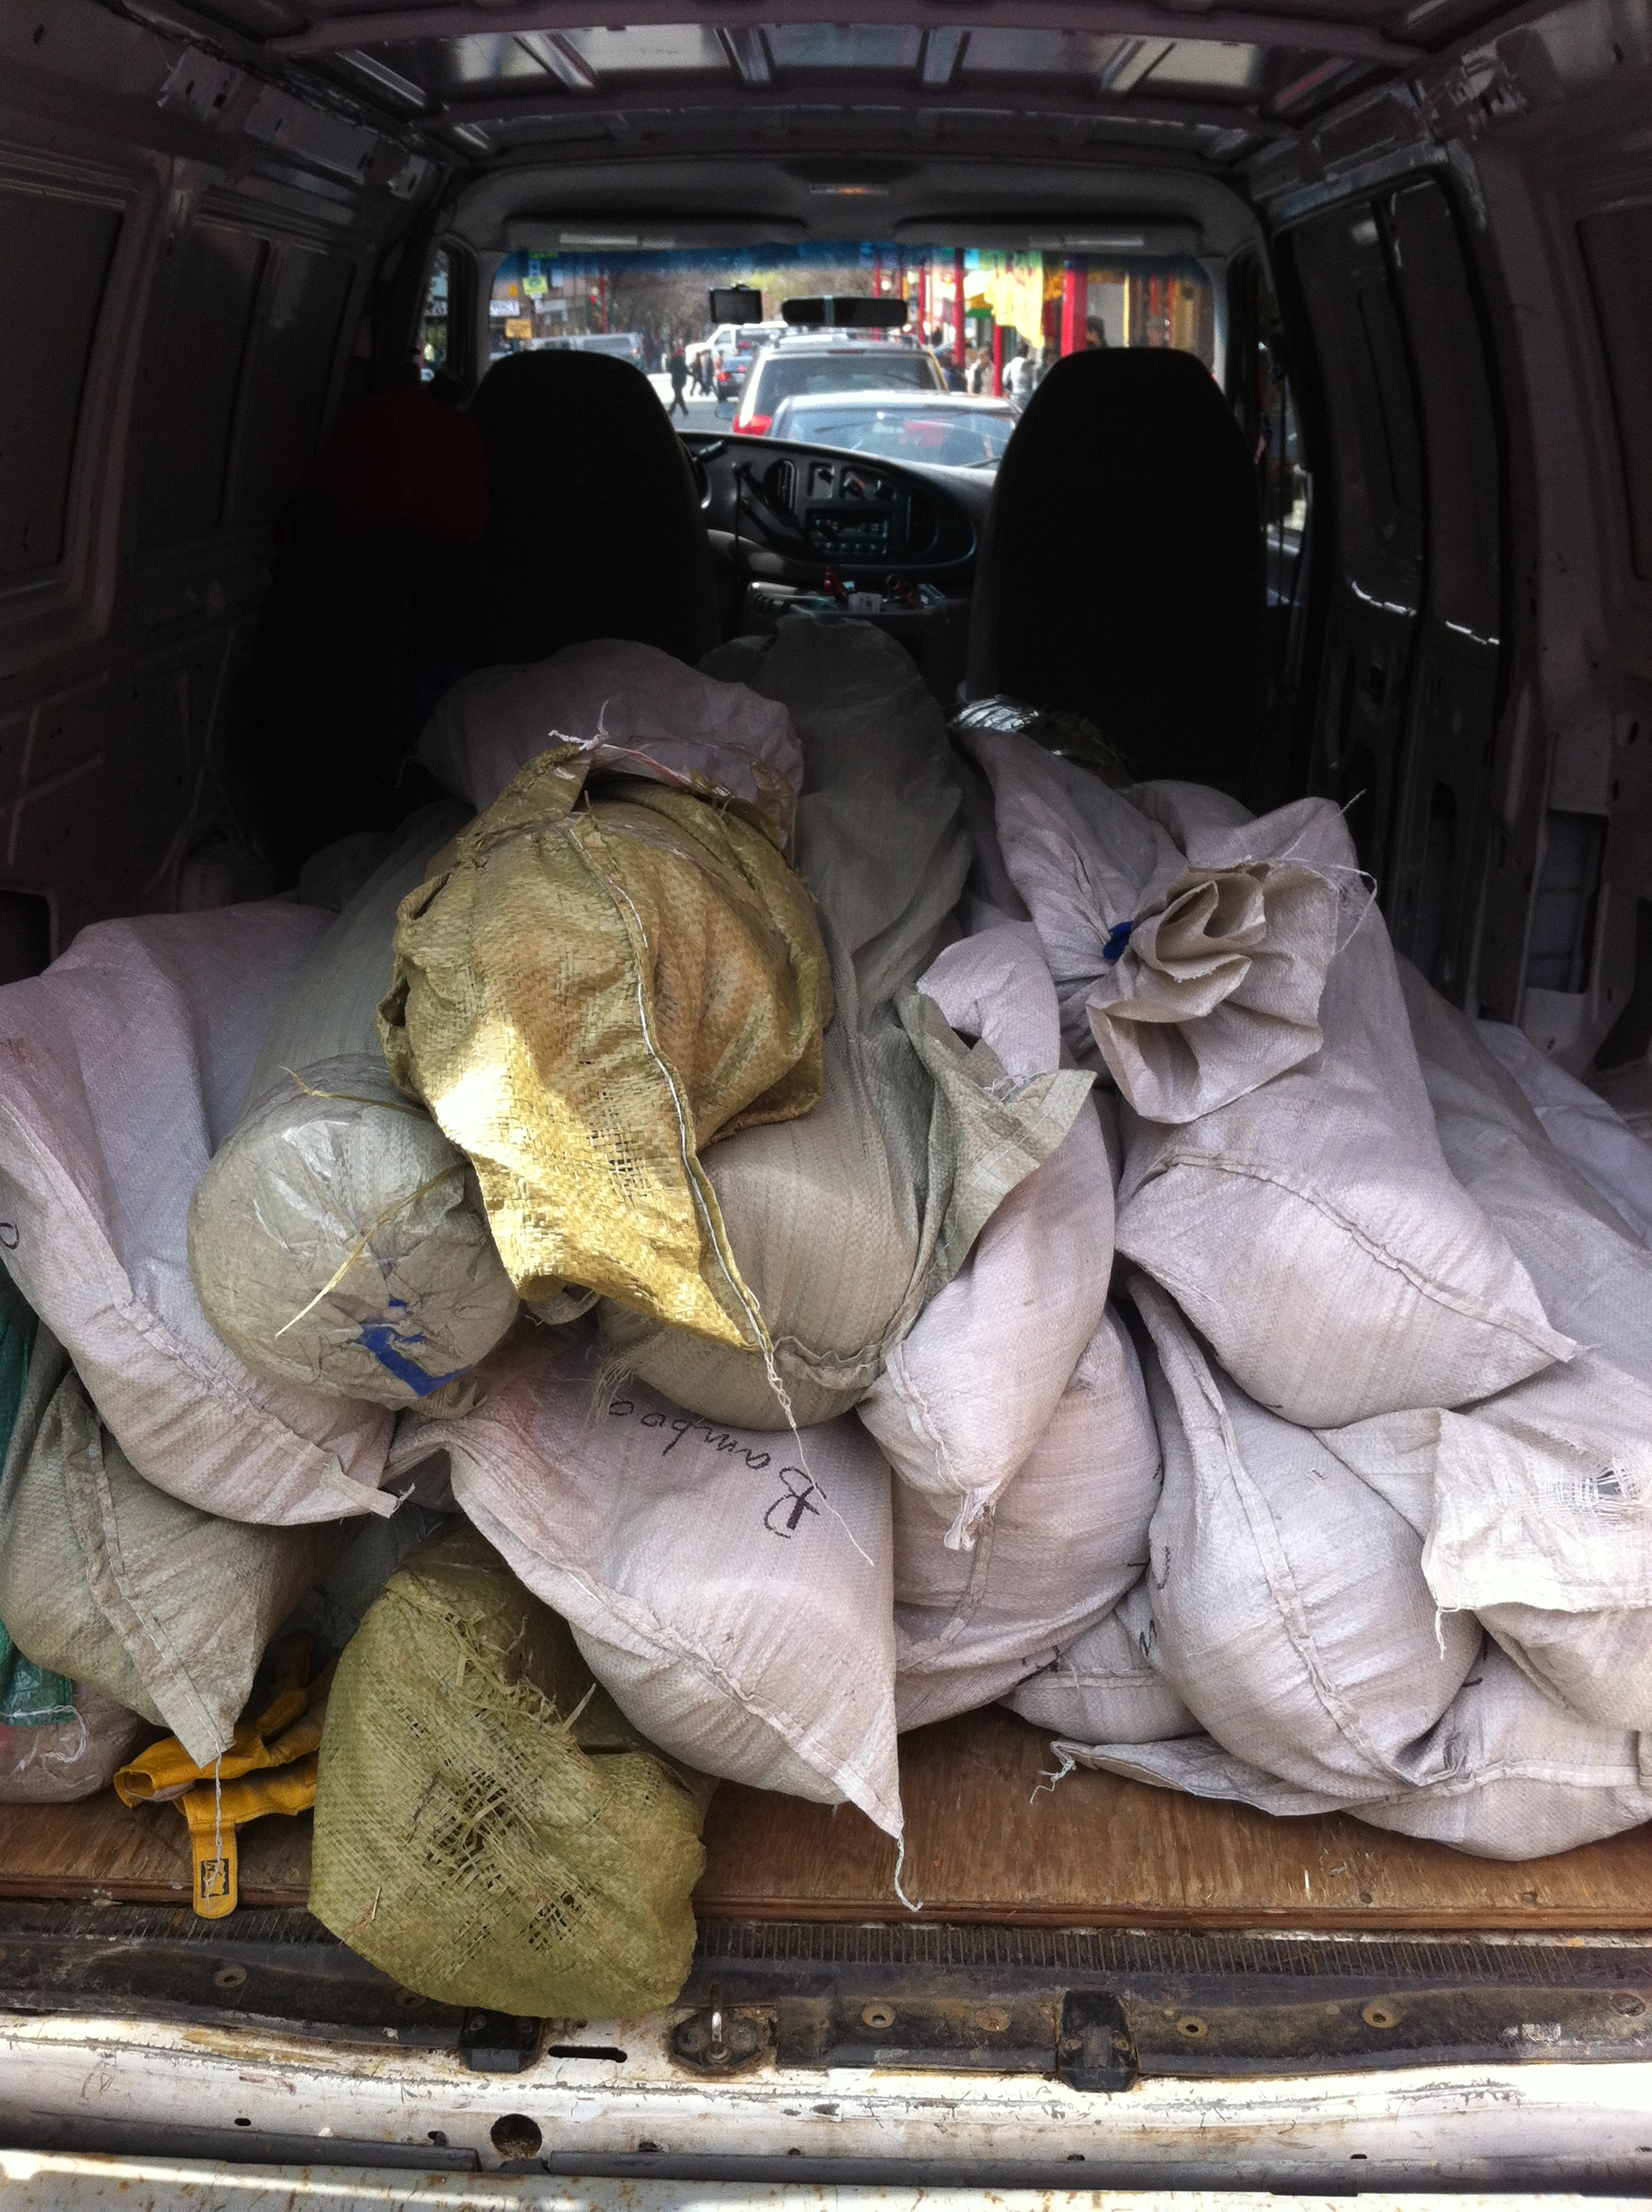 Fabric Upholstery Pickup And Delivery Service Same Day Service Sam 39 S Small Moves Ltd